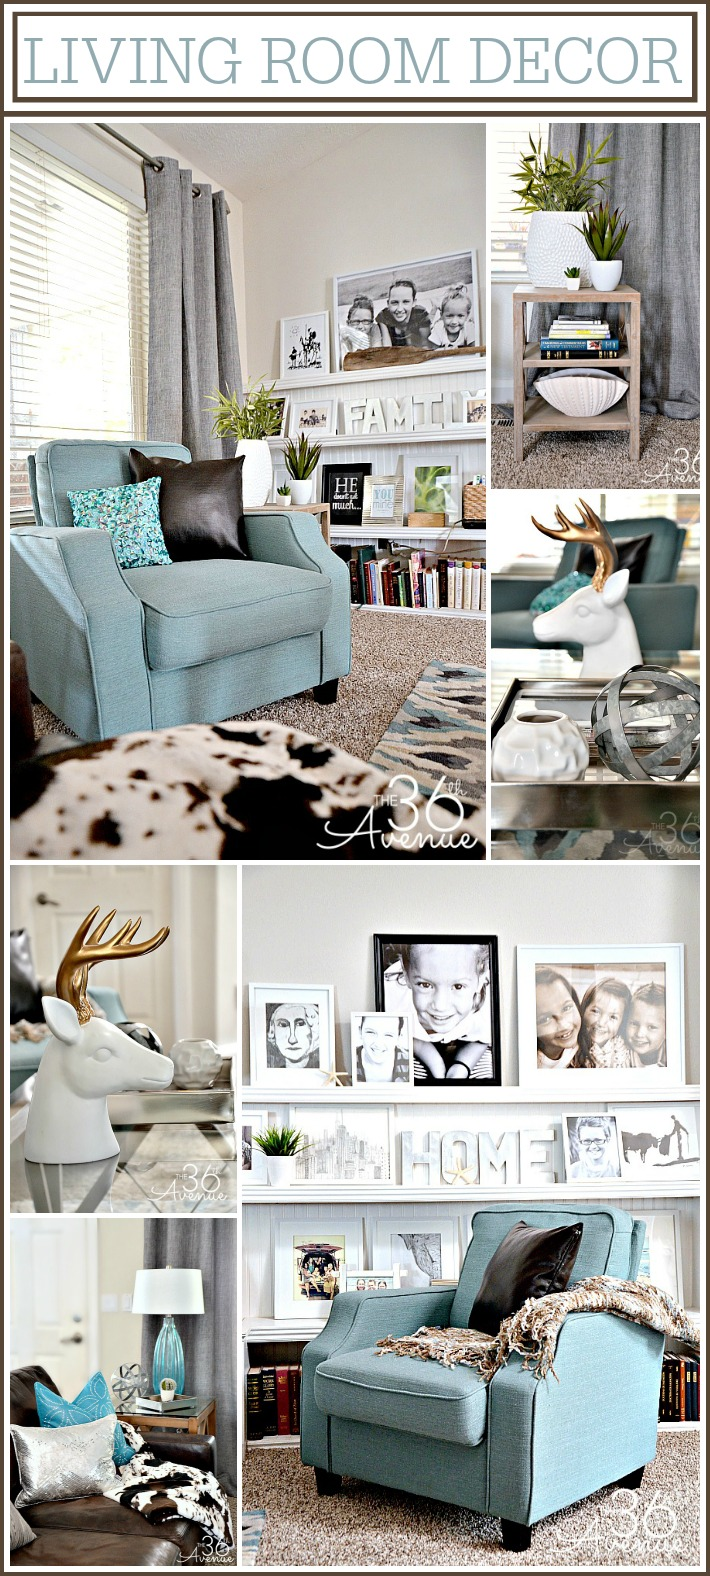 Living Room Decor Ideas at the36thavenue.com